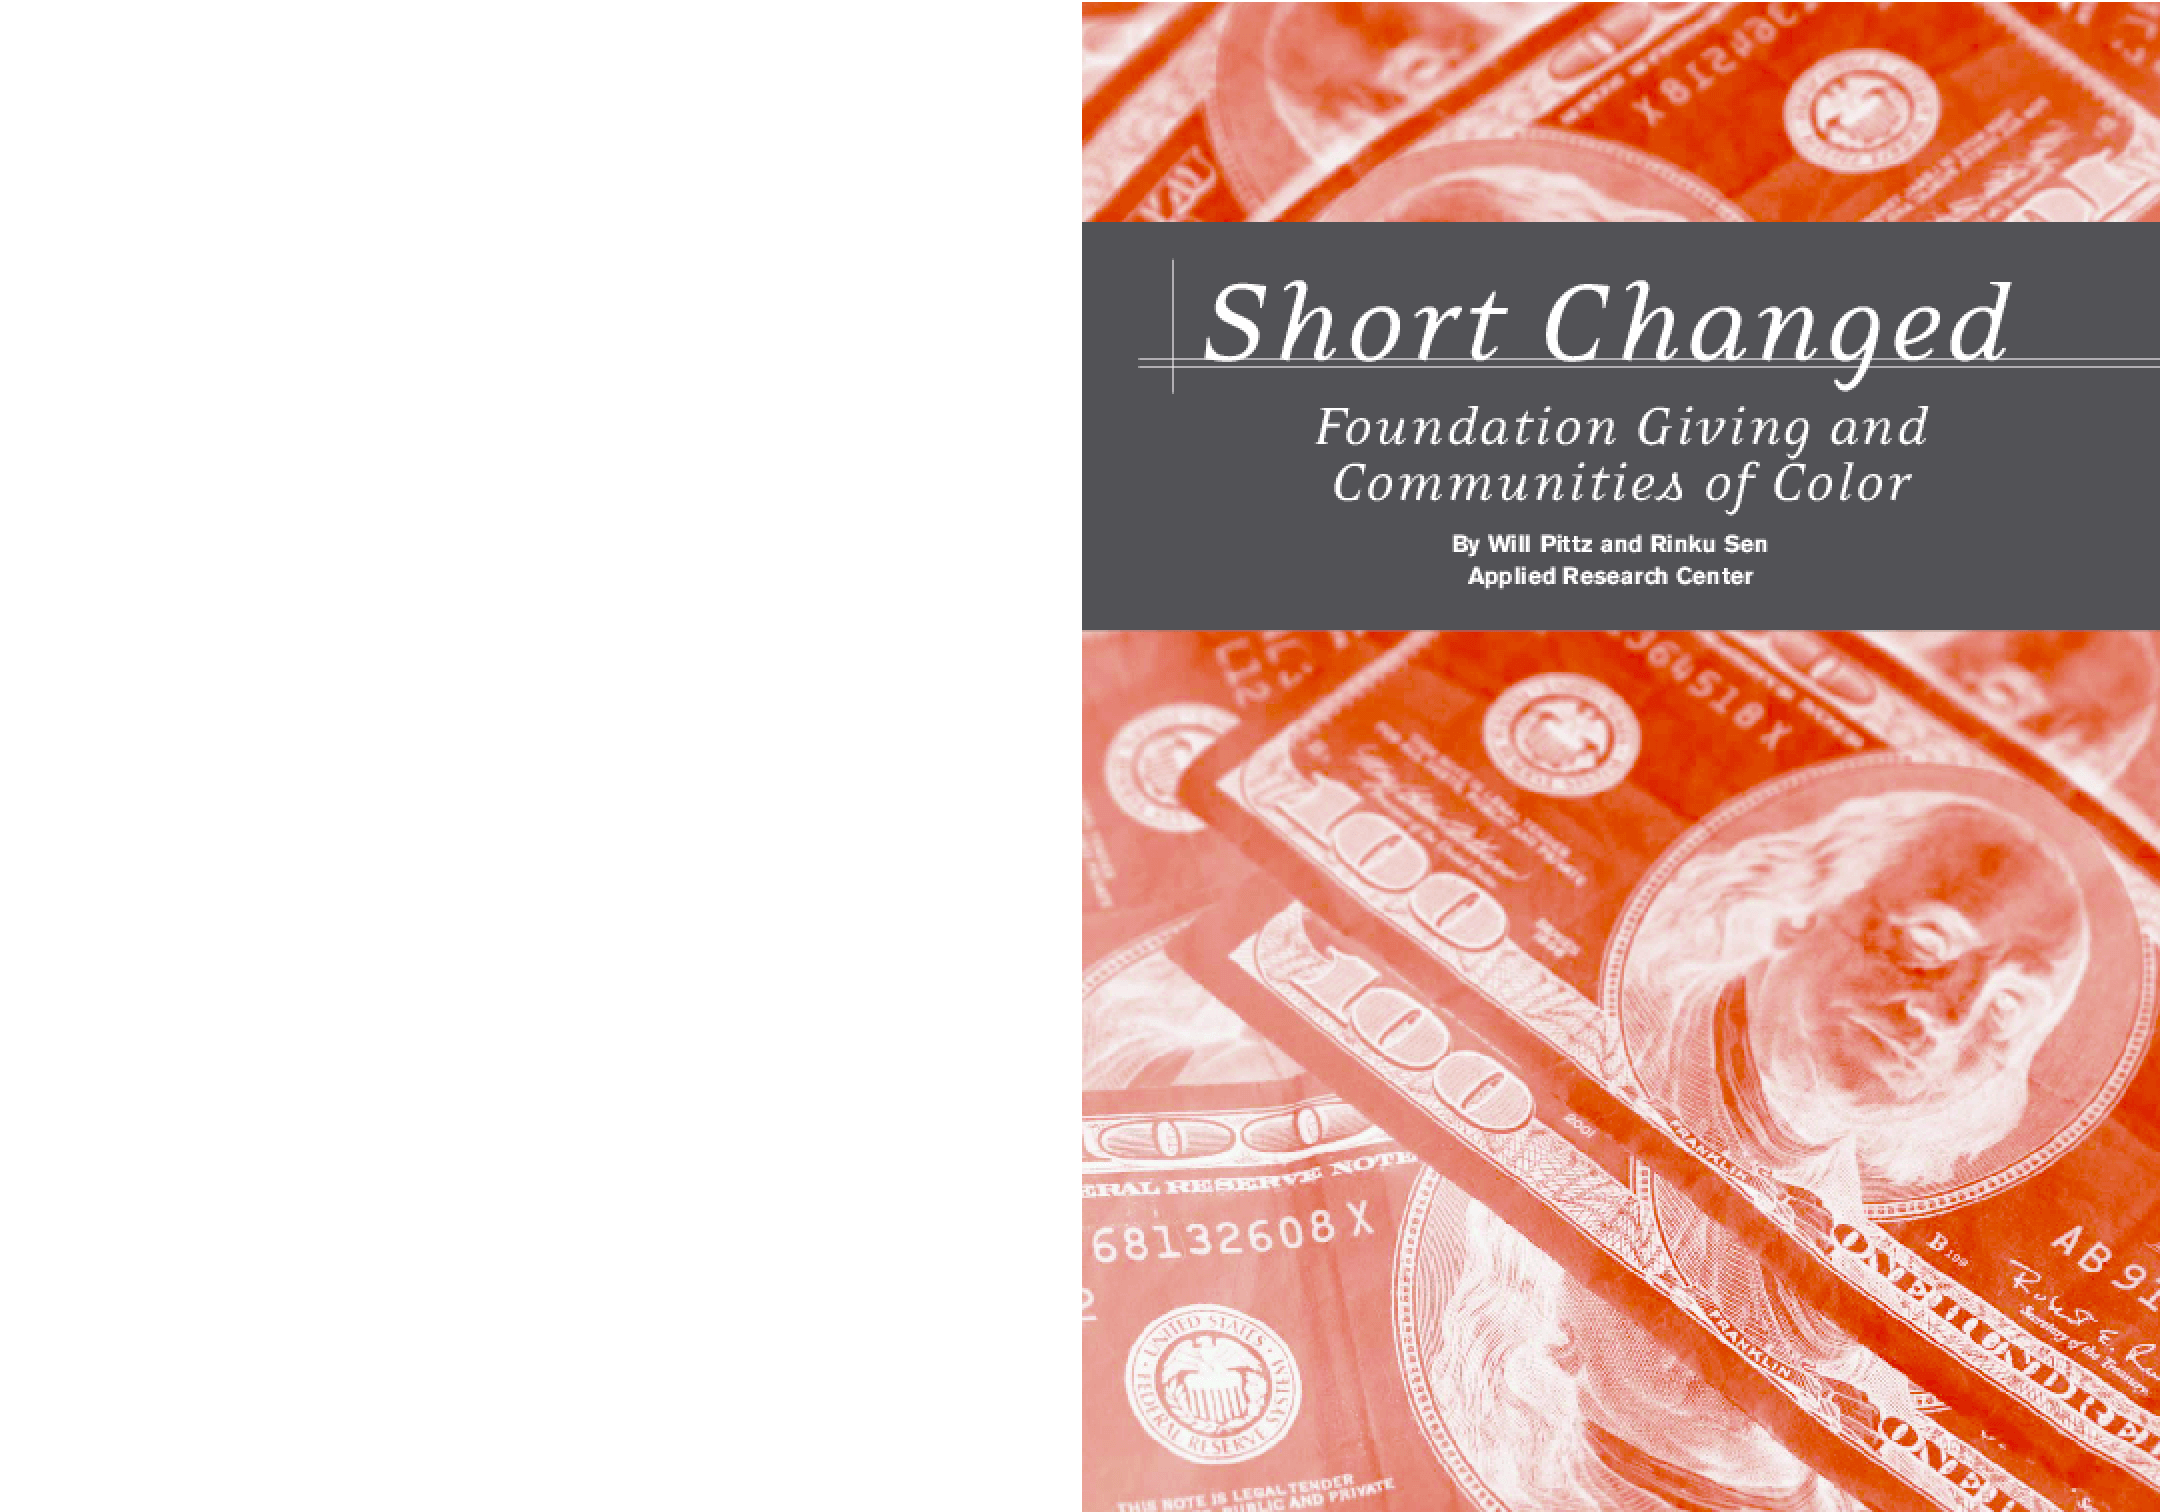 Short Changed: Foundation Giving and Communities of Color